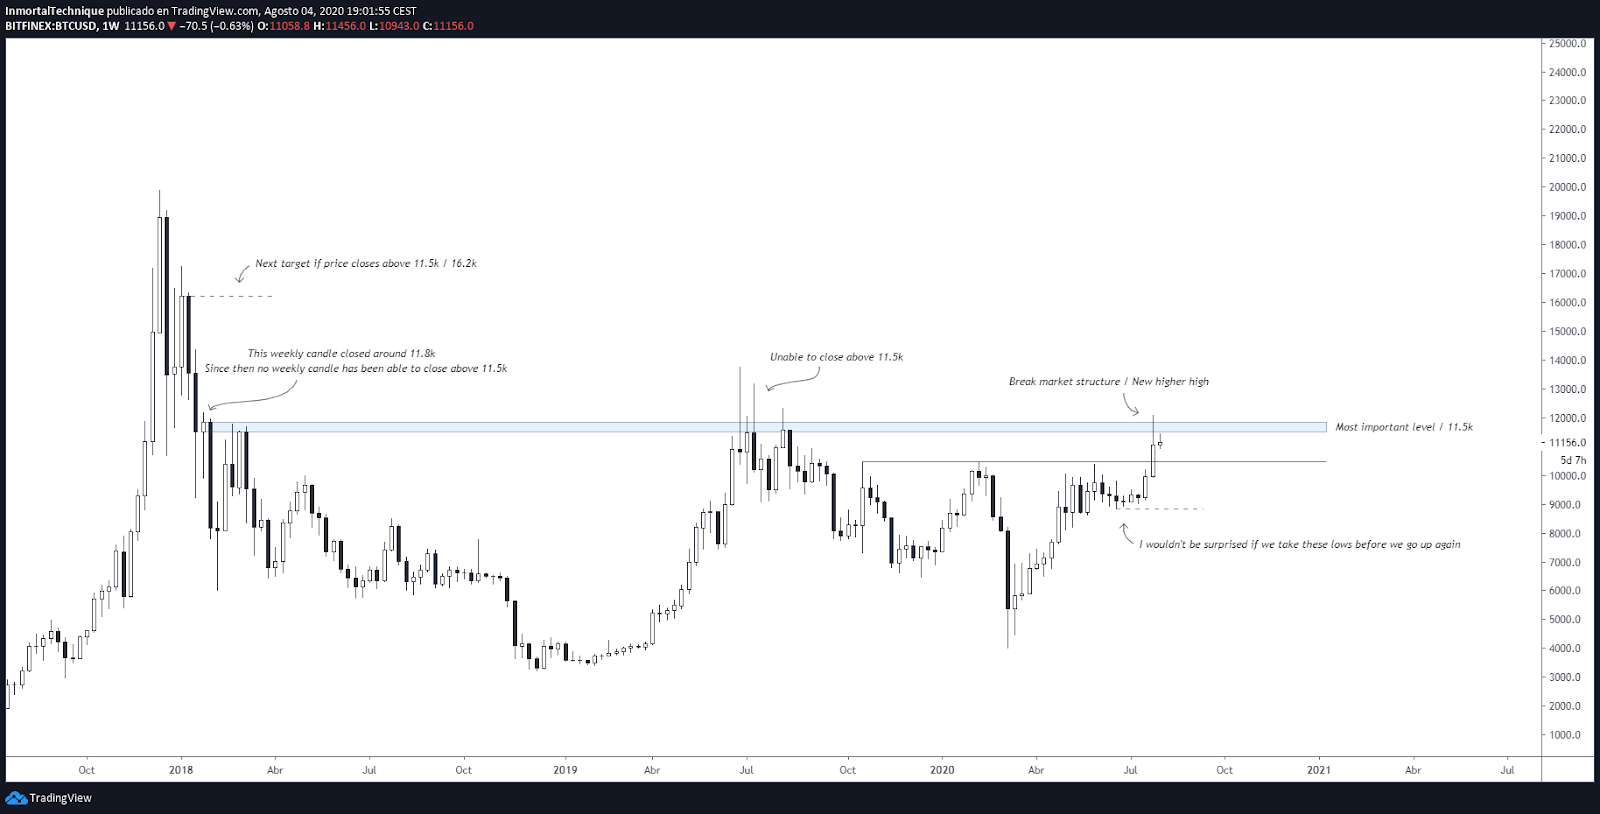 Weekly price chart of Bitcoin with key resistance and support levels